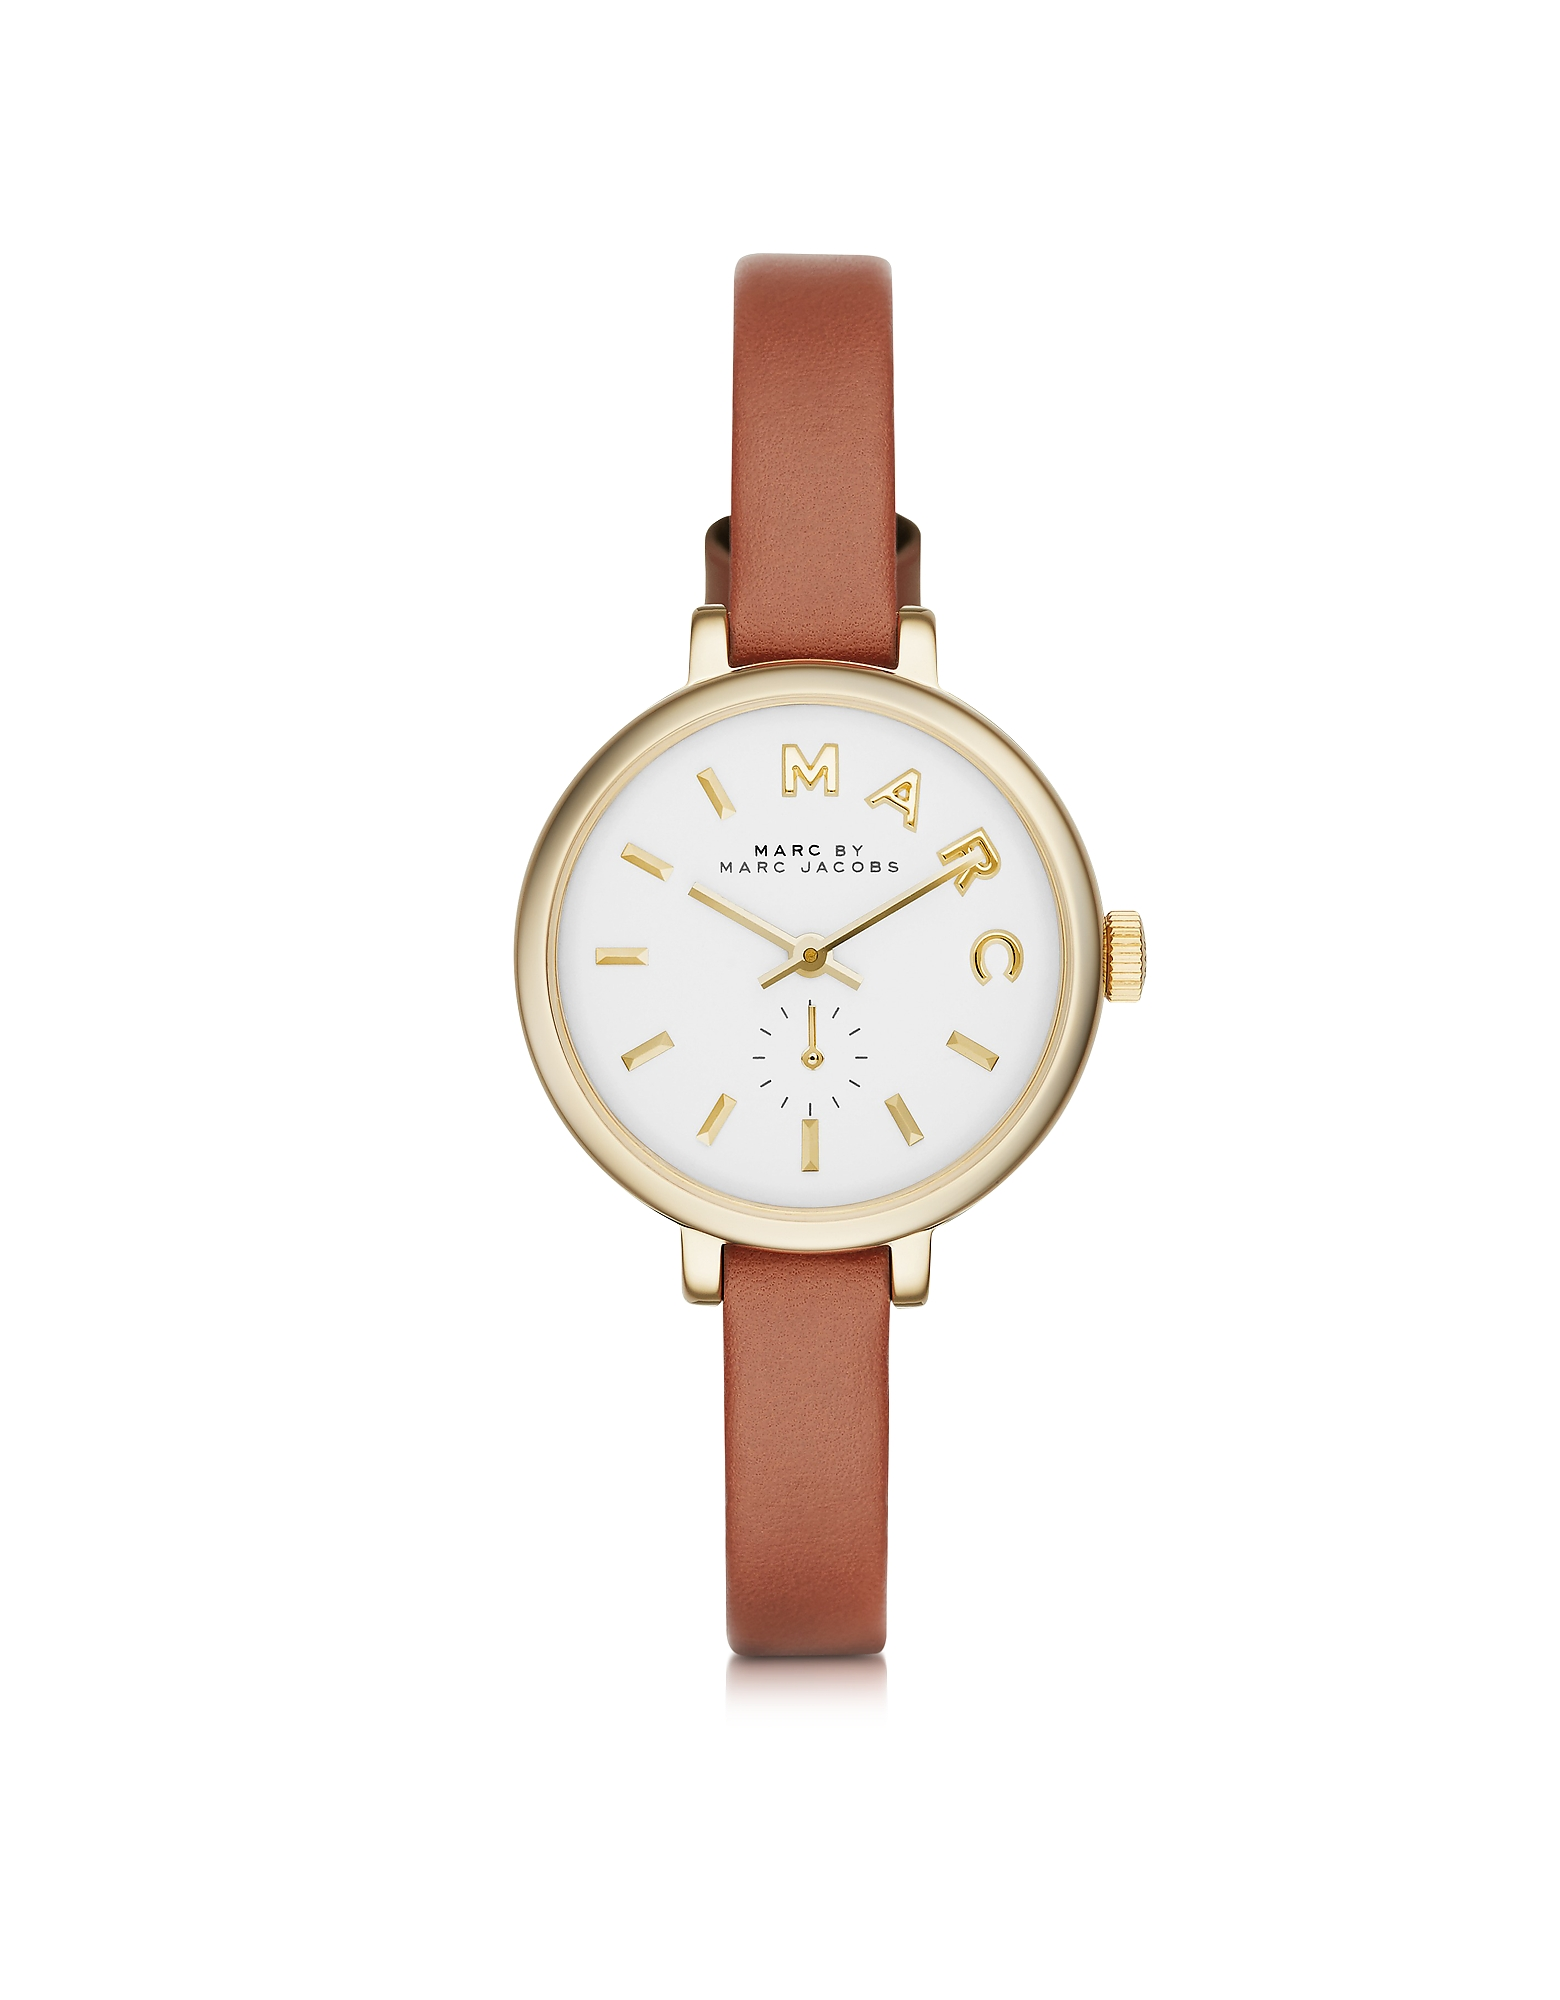 Marc by Marc Jacobs  Women's Watches Sally 28 MM Stainless Steel and Leather Strap Women's Watch